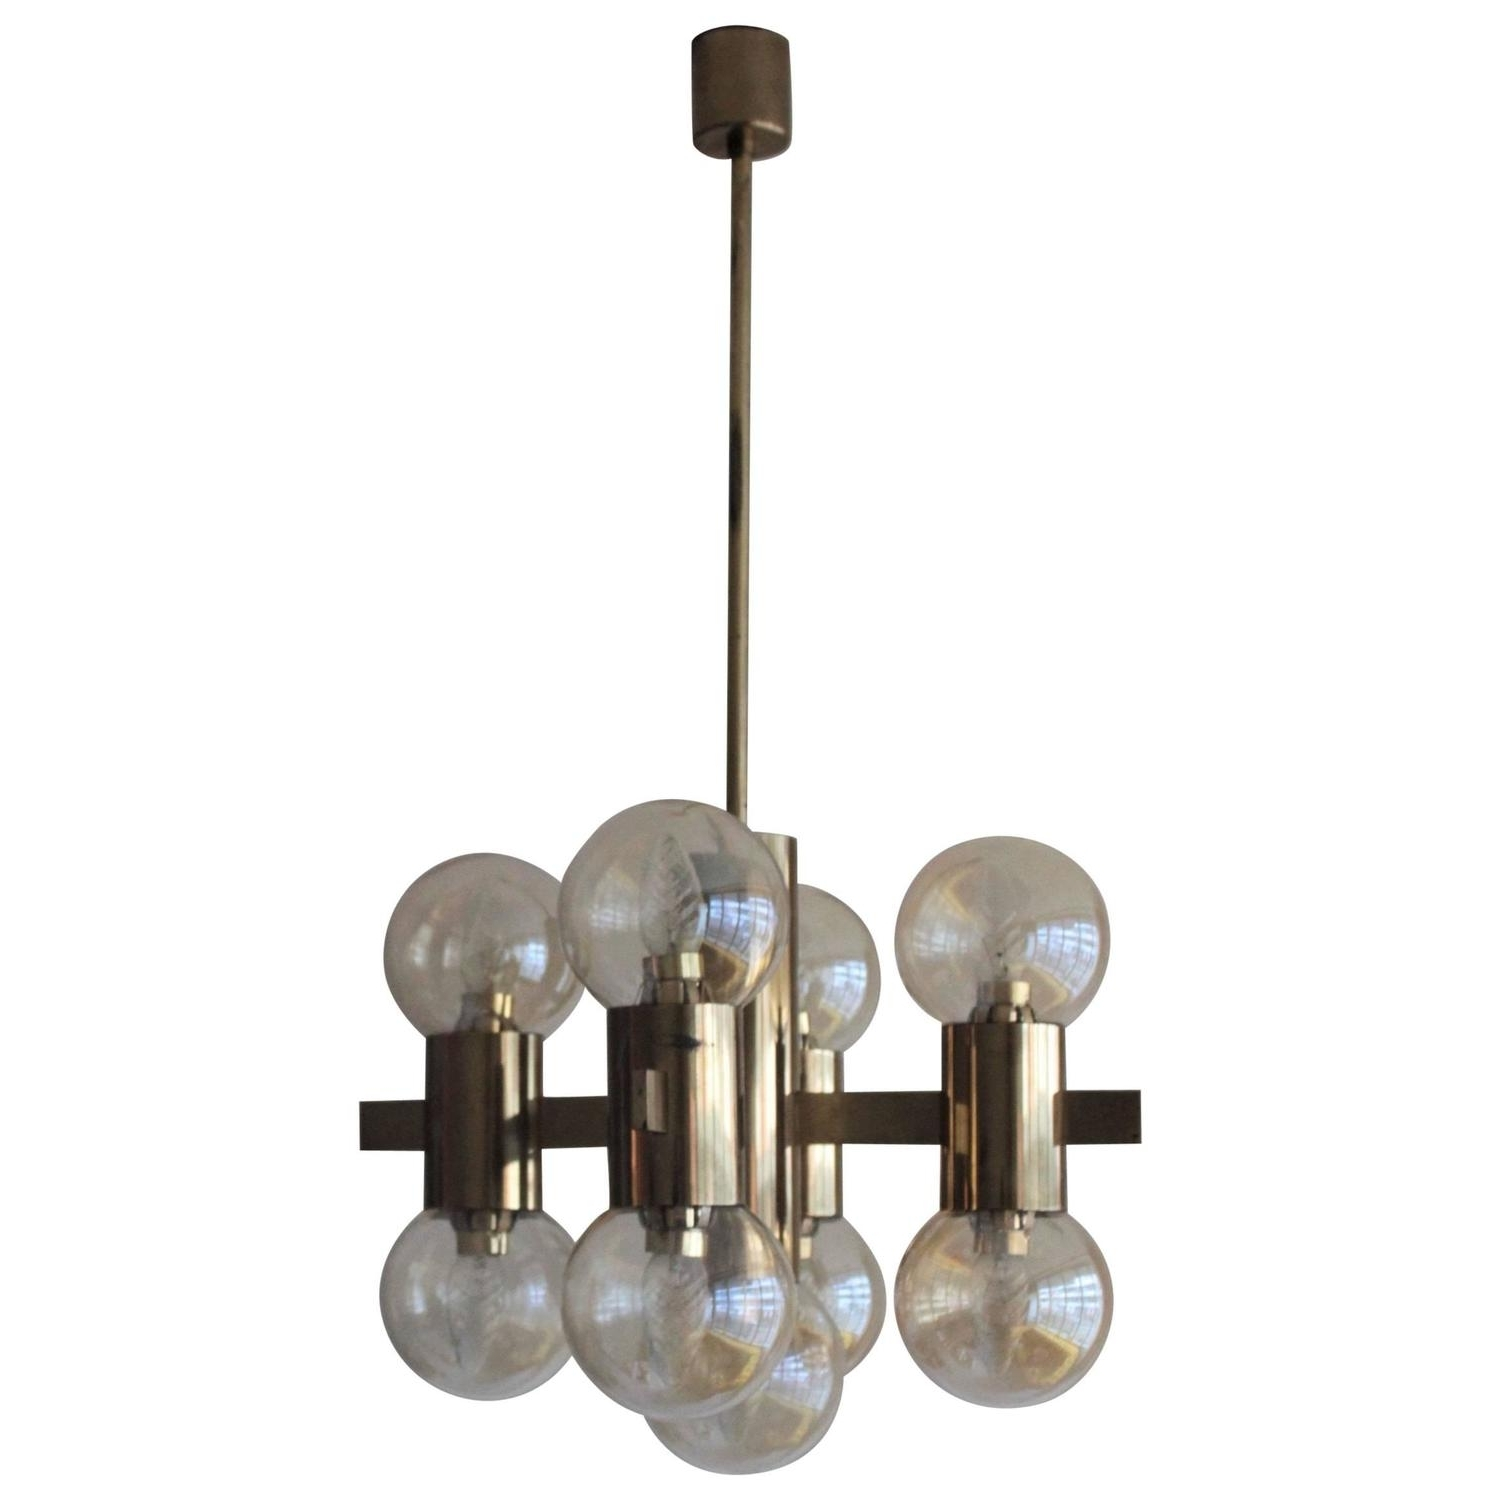 Italian Brass Smoked Glass Chandelier, 1970S For Sale At 1Stdibs Within Most Recent Smoked Glass Chandelier (View 7 of 15)